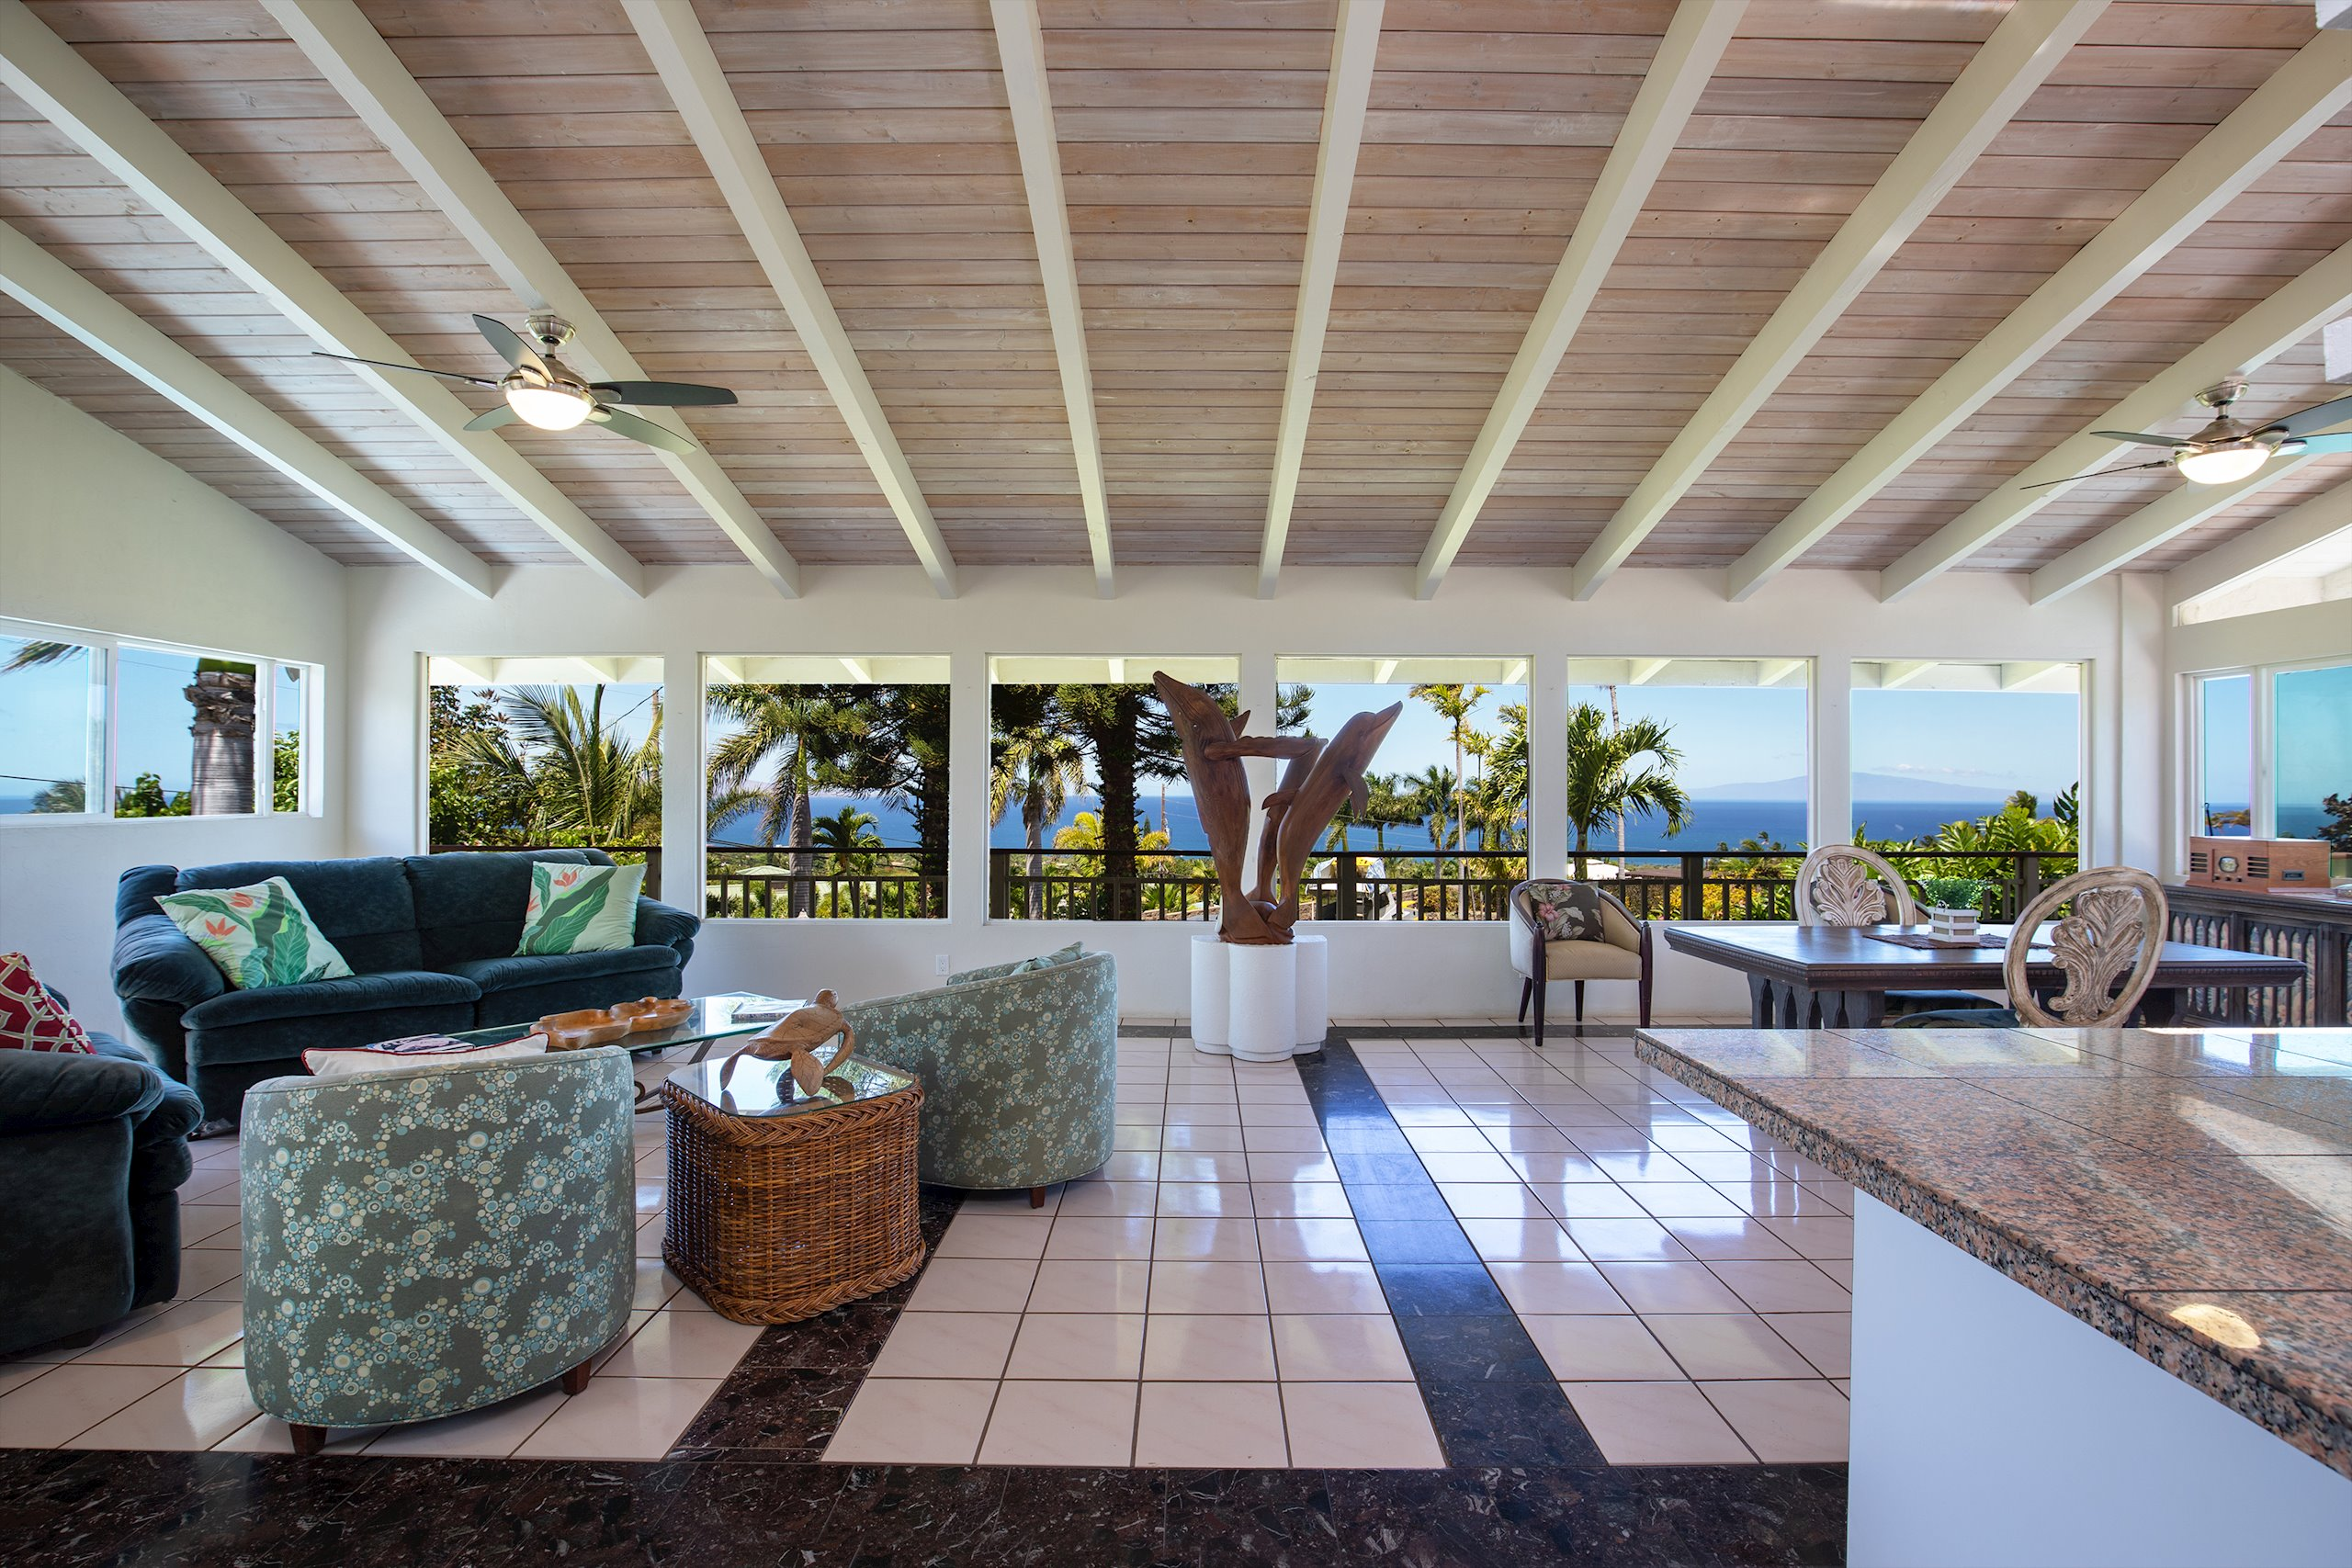 This is the best value in Maui Meadows when you consider it offers 3990 sq ft of permitted living space on a flat, half acre lot in Maui Meadows. And let's not forget the views from every floor of the house. The 180+ degree panoramic ocean views can be enjoyed from both the first and second level, or take it up the rooftop lanai for sunsets and cocktails with spectacular 360 degree views in every direction.  The property is ideally suited for someone looking for rental income or for an extended family. The main residence on the 2nd floor offers a private entrance, open bean ceilings and marble flooring representative of Mediterranean style homes, along with a wrap around lanai to enjoy the big ocean views.  The ground floor is divided into two living areas - a 2br/1ba ohana with ocean views and 1br/1ba suite. Each has it's own separate entrance.  This private flat half acre property is surrounded by mature landscaping and an assortment of native and fruit bearing trees. It is only minutes away from the world renowned resorts, restaurants and the sandy beaches of Wailea and south Kihei. And did I mention the views?  Contact your favorite Realtor today to set up a private showing and see for yourself!